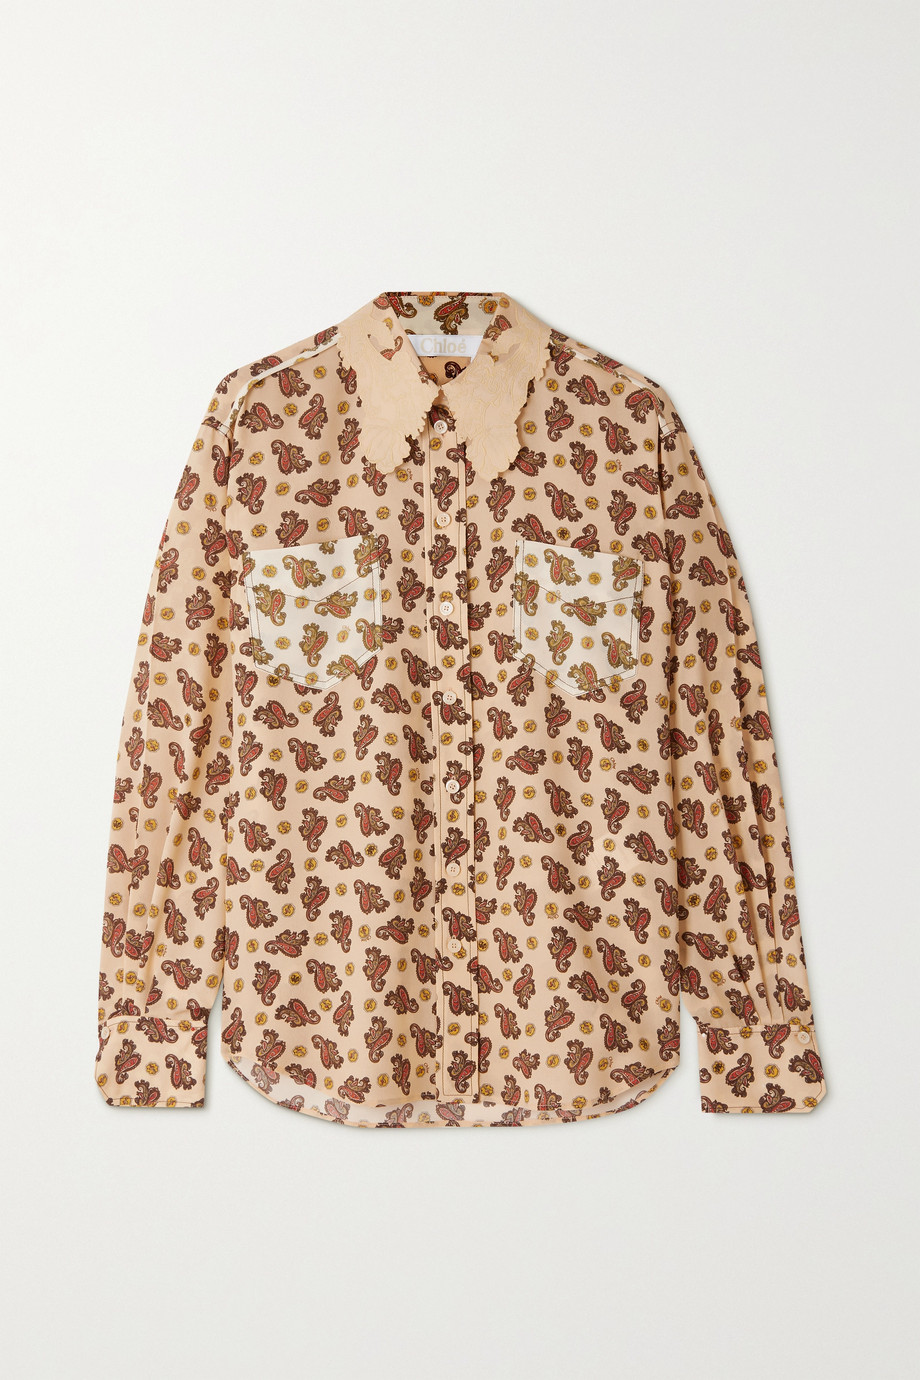 Chloé Floral-embroidered paisley-print silk crepe de chine shirt